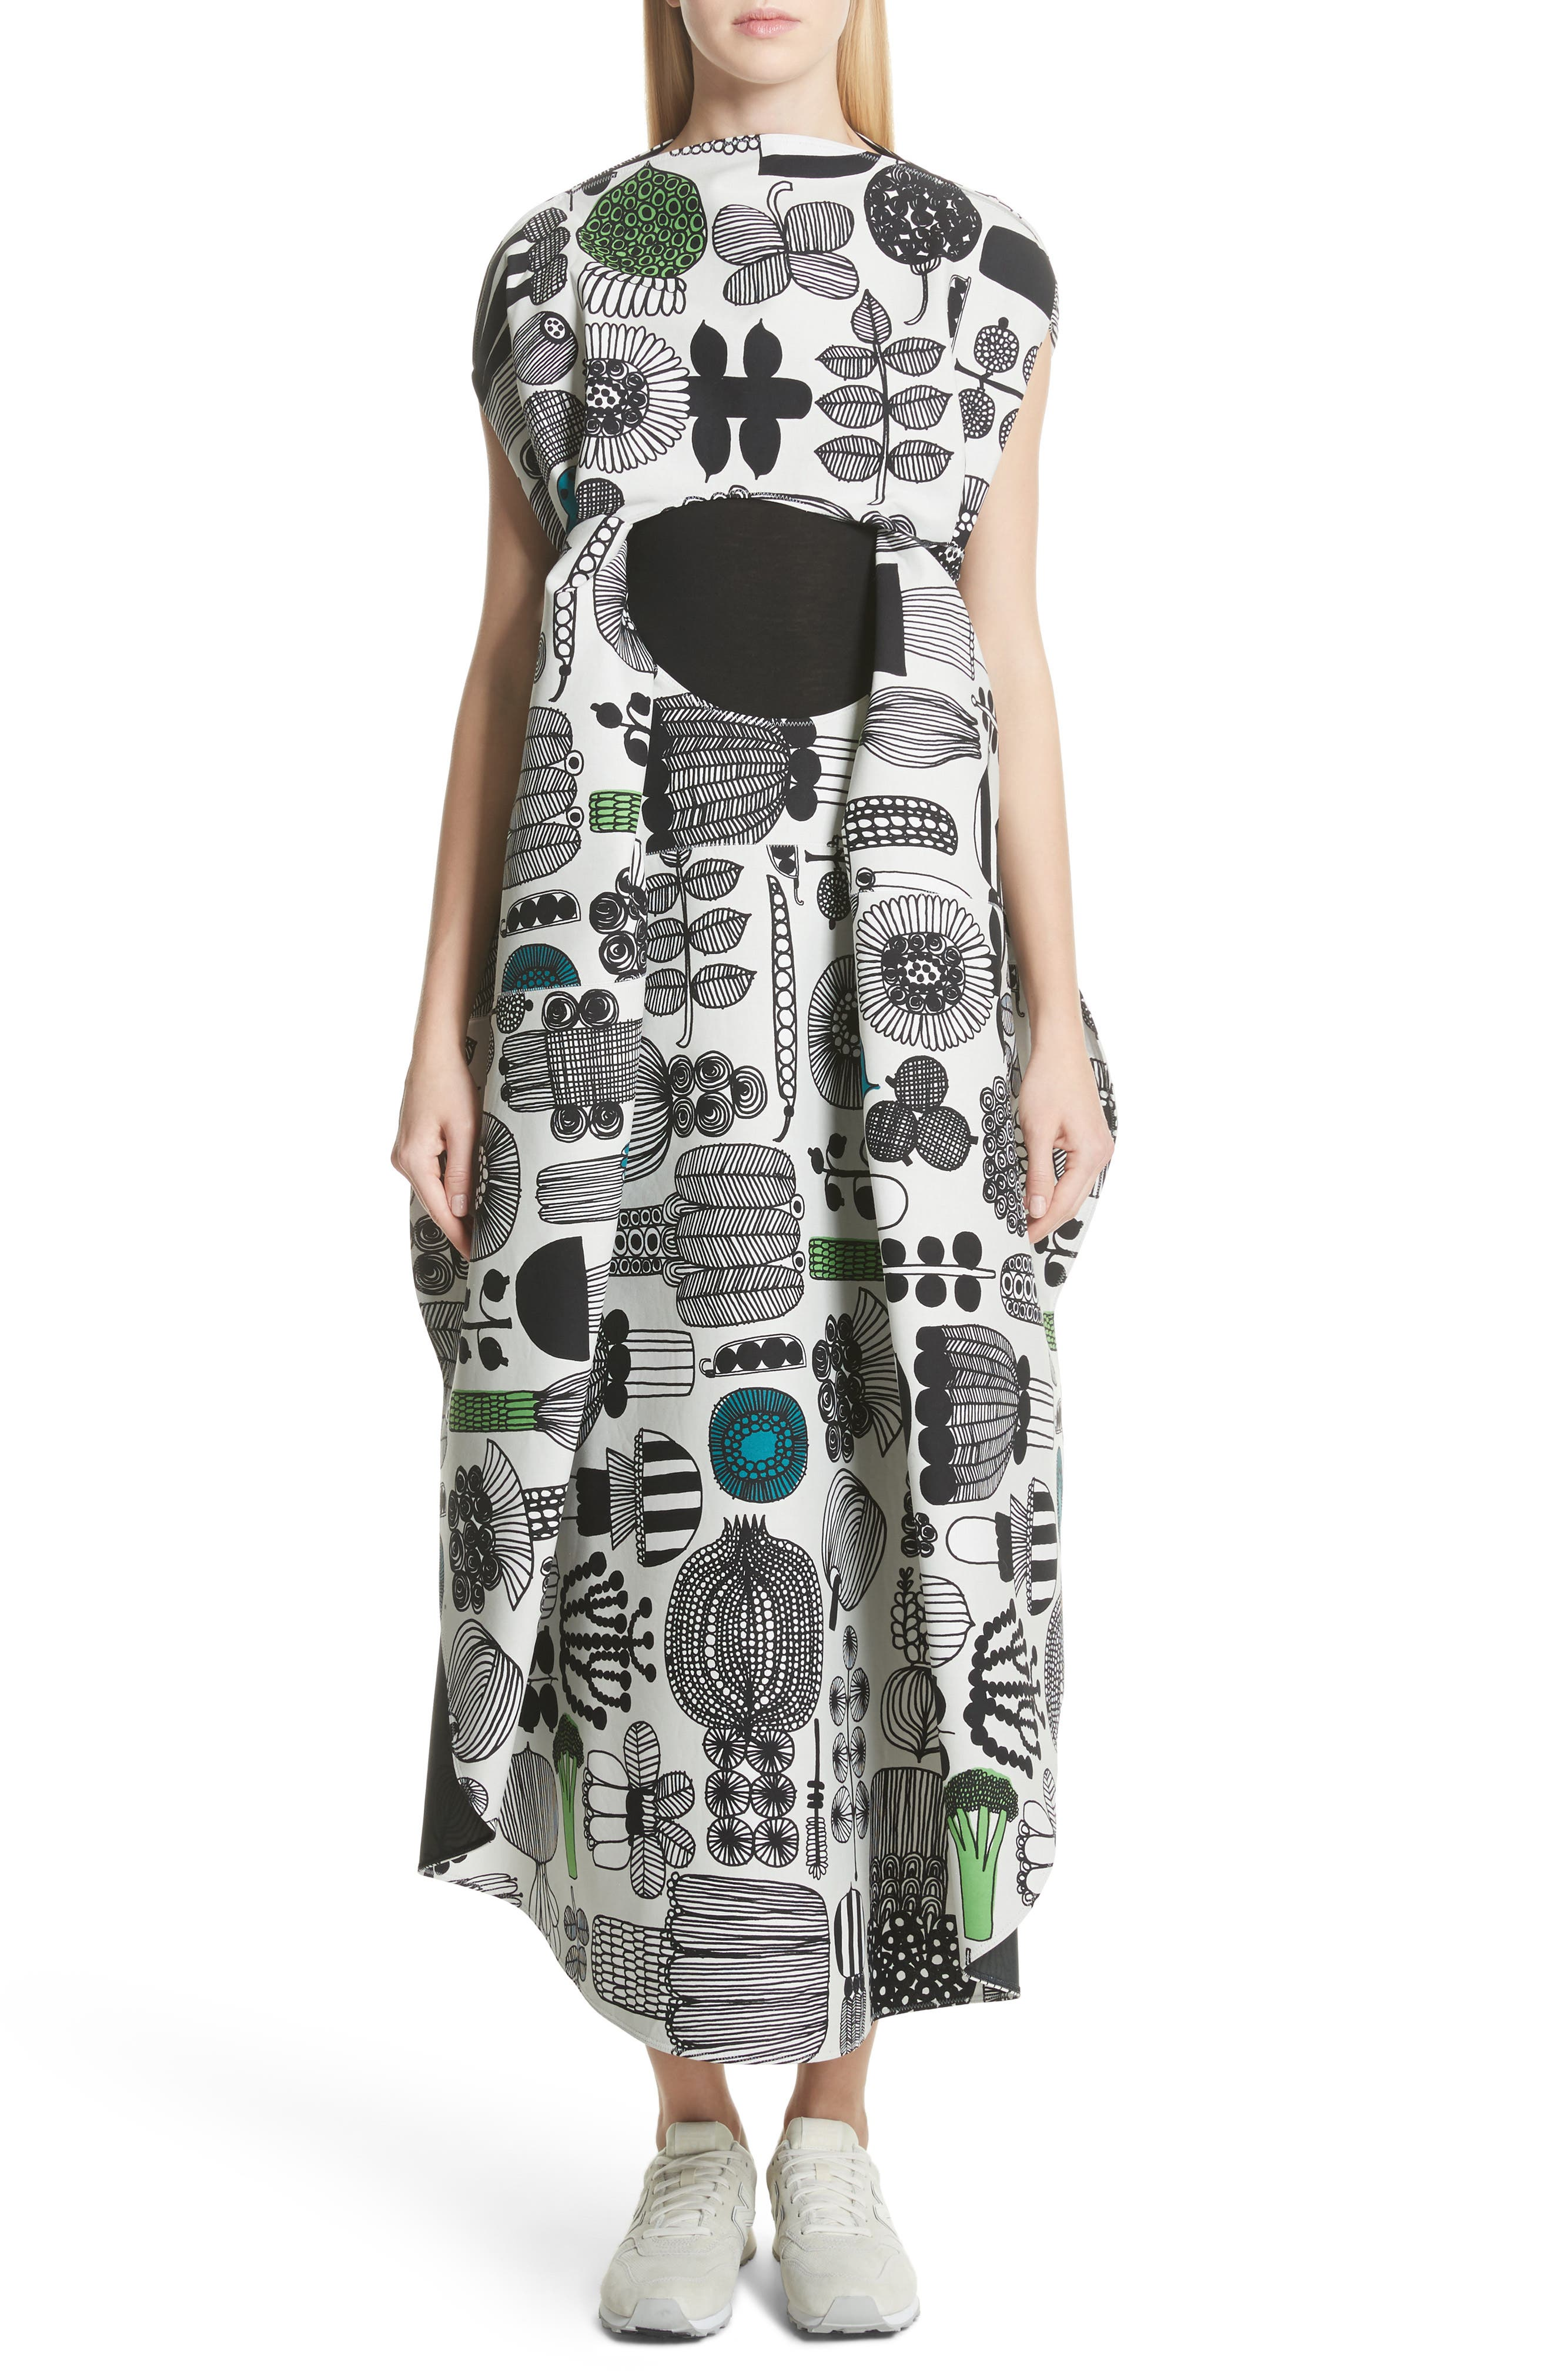 Vegetable Print Shift Dress,                         Main,                         color, Gry/ Grn/ Blk